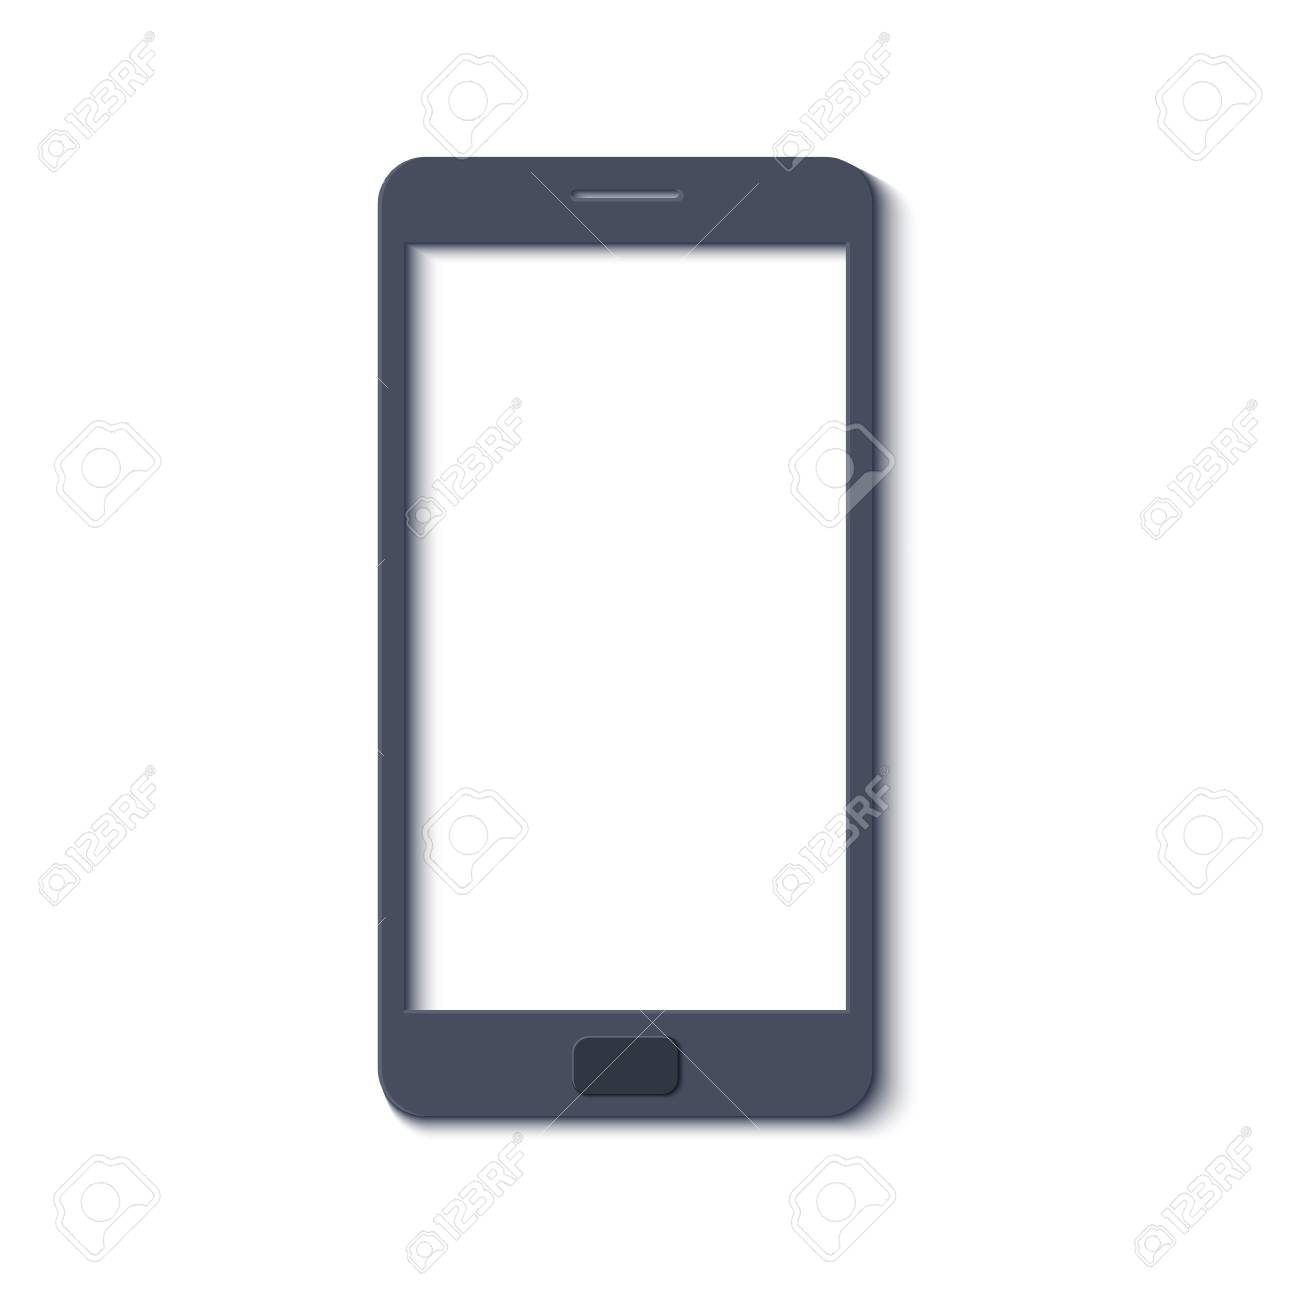 Professional cell phone screen hd 1920 stock vector (royalty free.